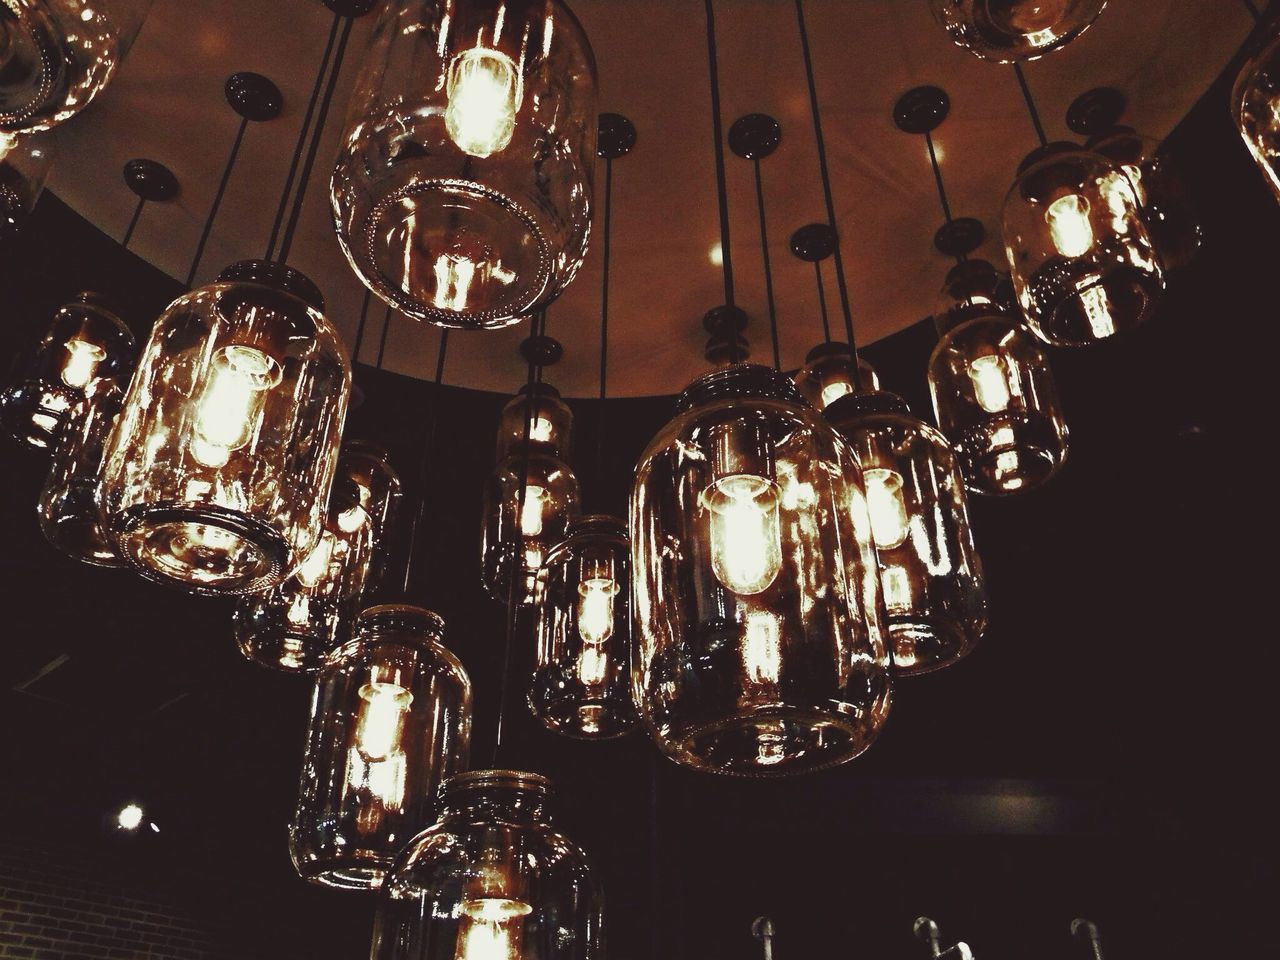 Low Angle View Of Illuminated Pedant Lights Hanging On Ceiling